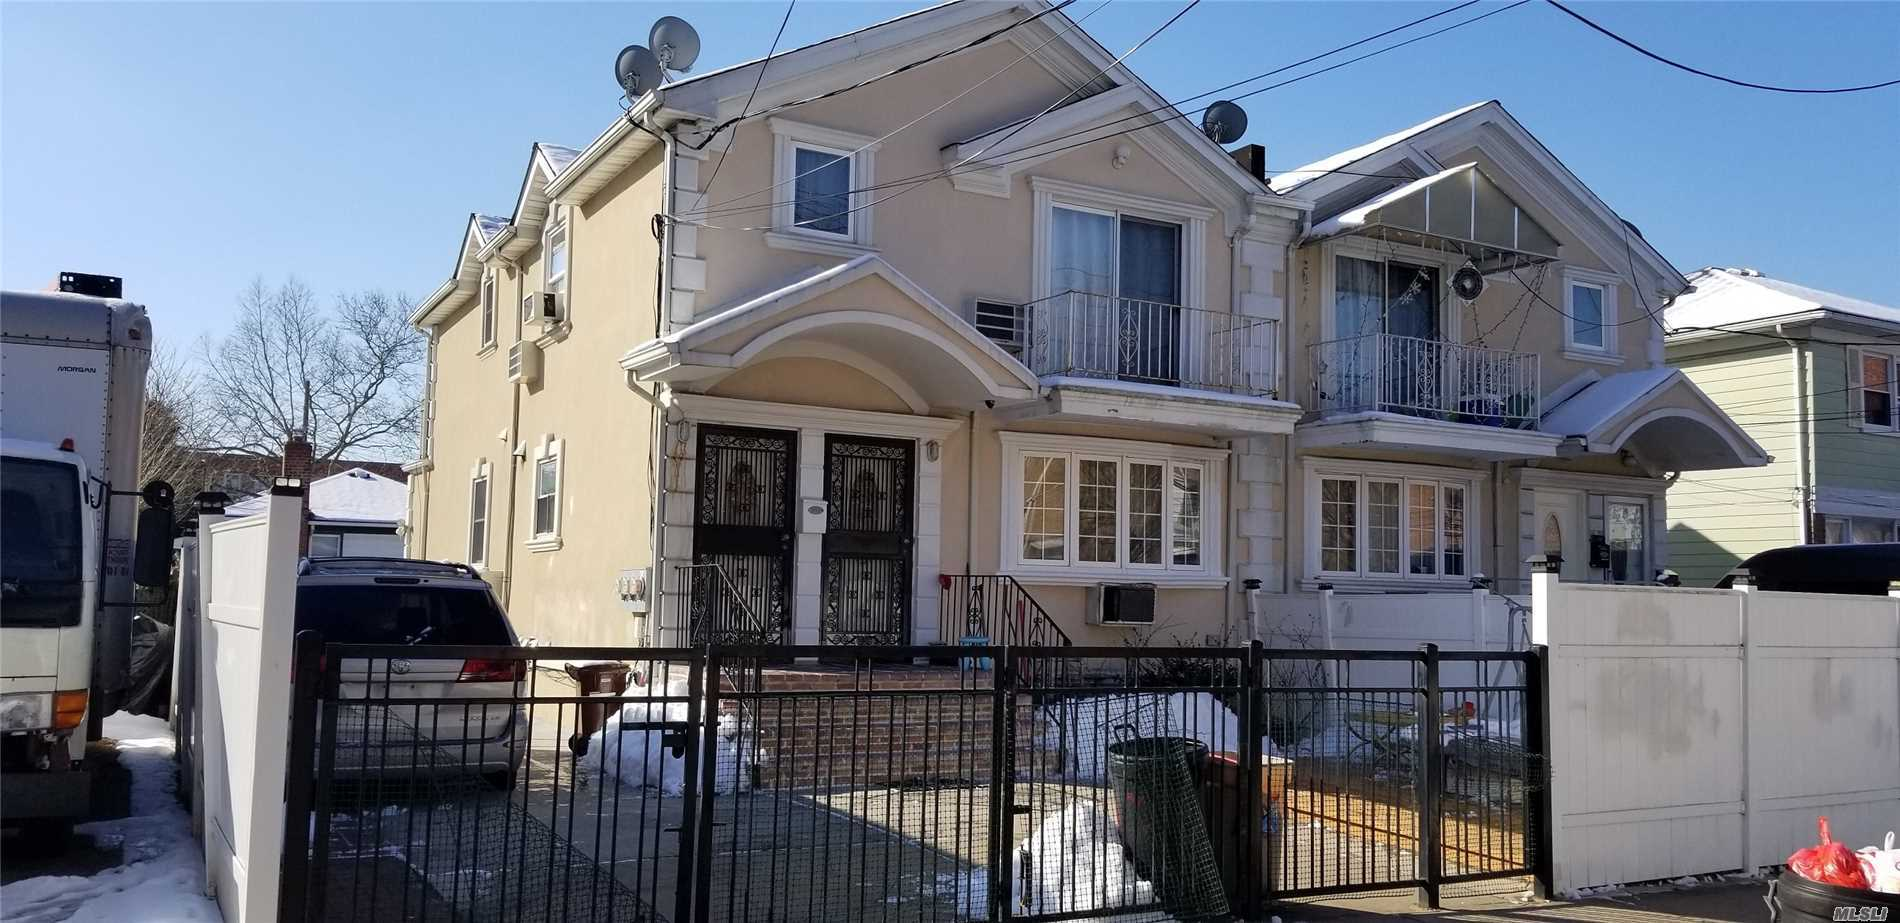 Property for sale at 161-10 72 Avenue, Fresh Meadows NY 11365, Fresh Meadows,  New York 11365